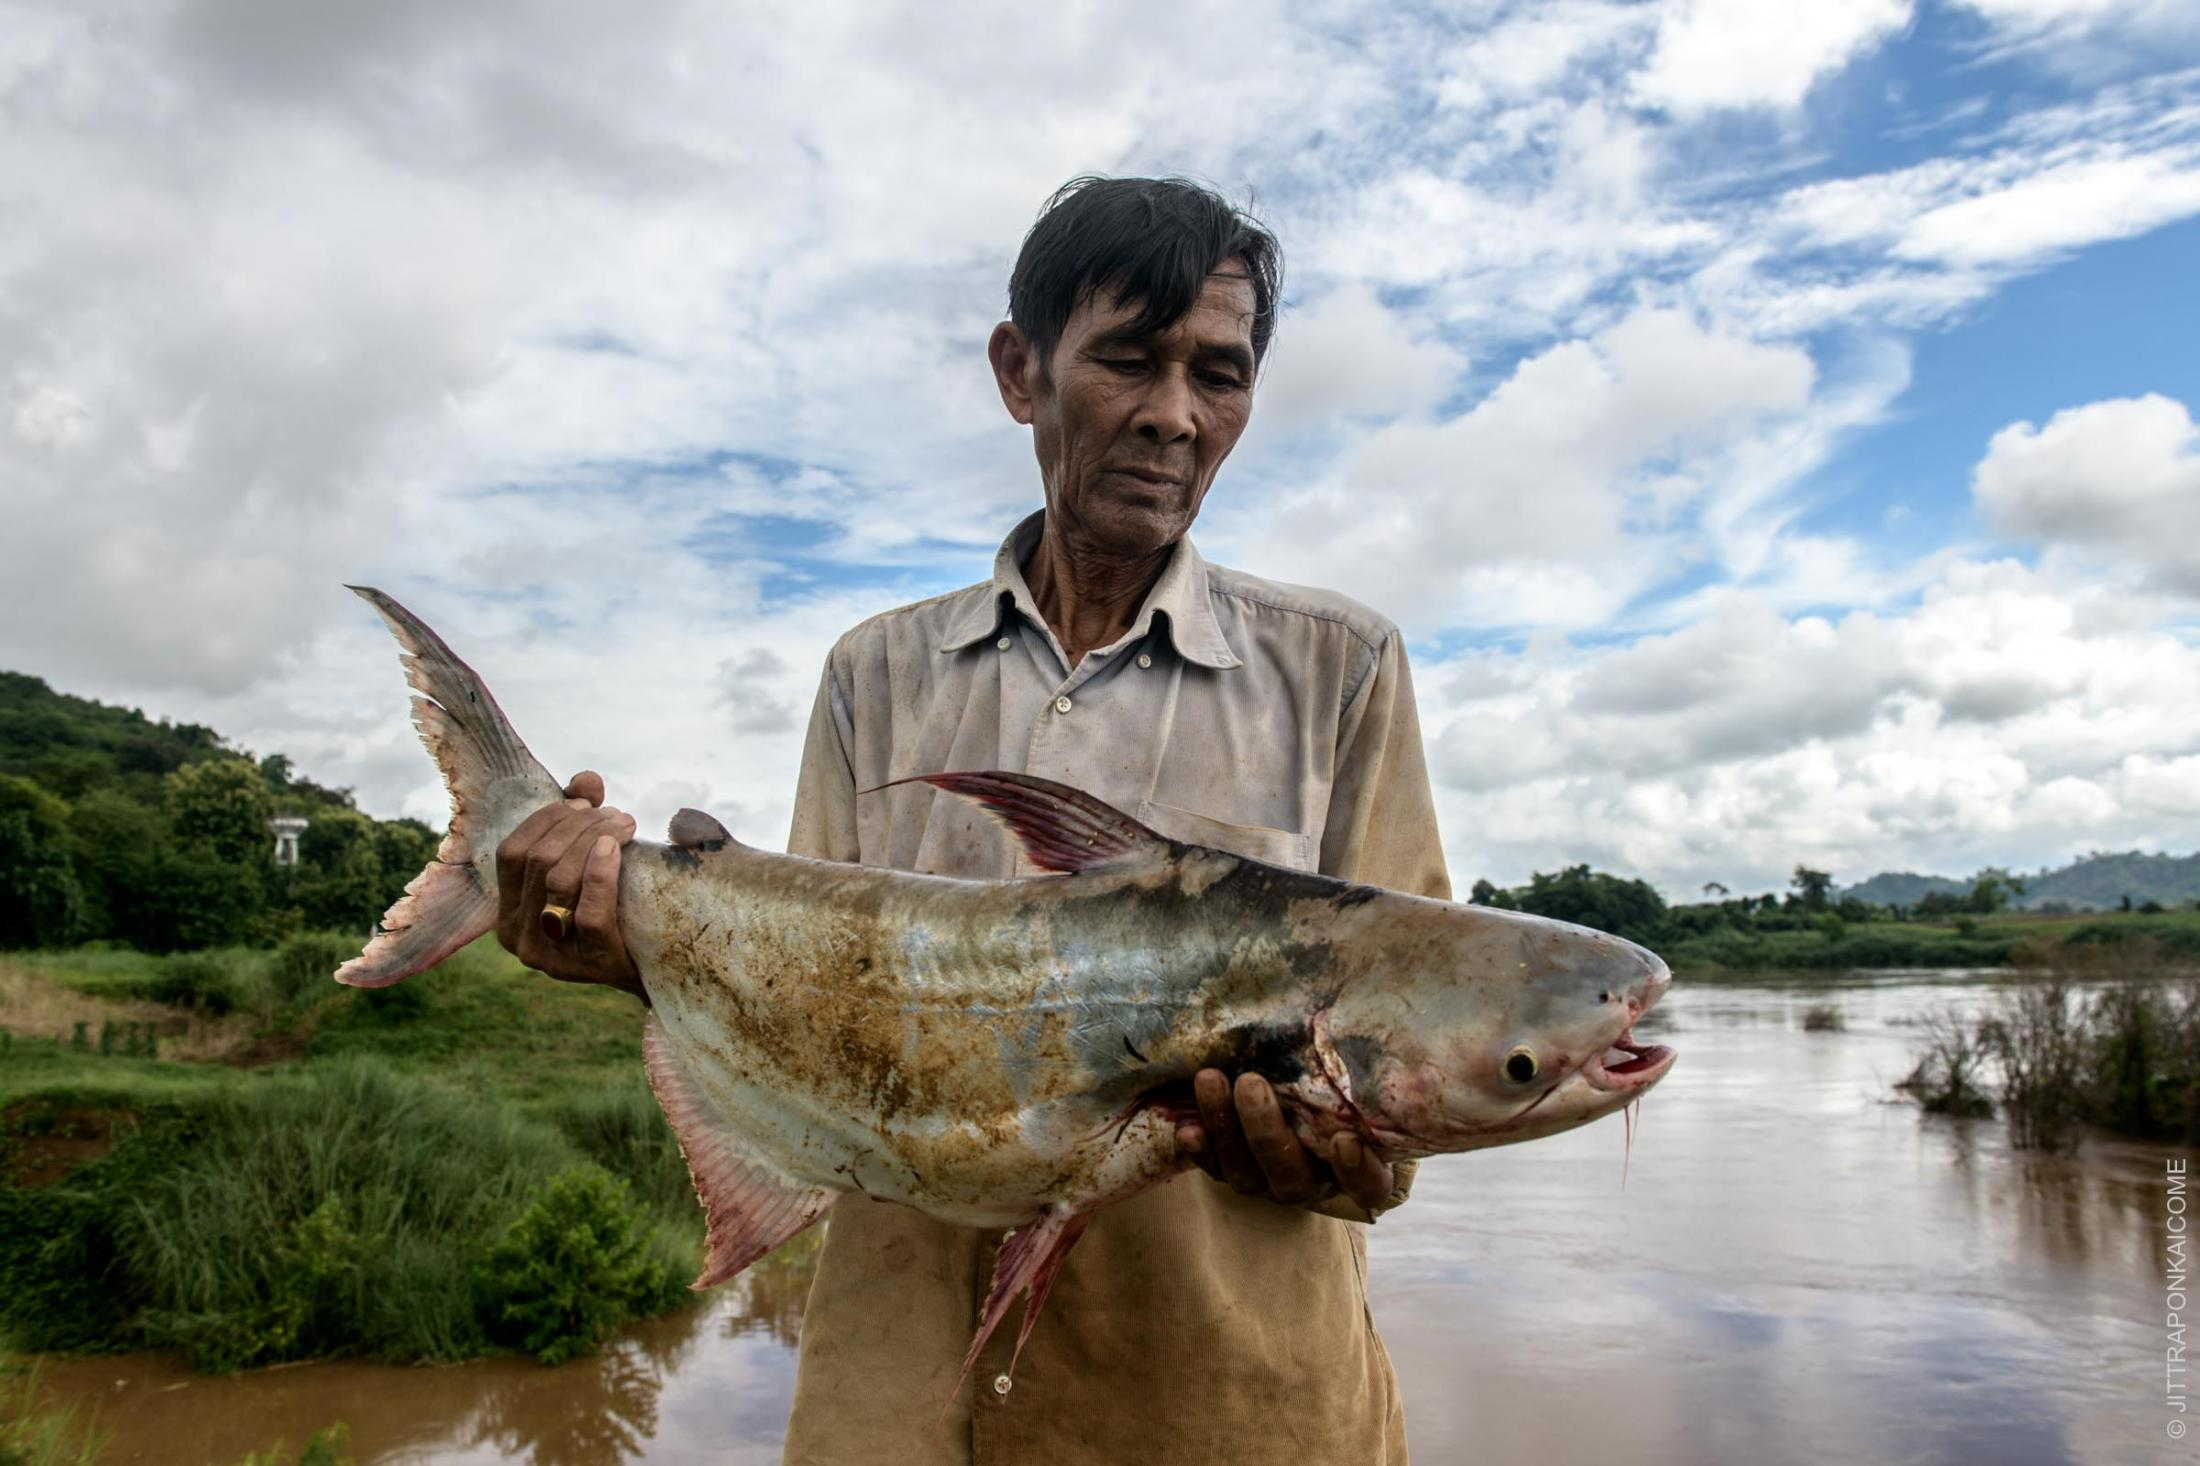 Supol Khamthong, a 67 years old fisherman, caught a black-eared catfish weighing 5 kilograms. As the riverine ecosystem of the Mekong River is affected by the many upstream dams, water levels are lower than usual, negatively influencing this specie's reproductive cycle. Suppose more dams are built in the Mekong basin, this fish could become endangered. Sangkhom district, Nong Khai, Thailand – August 2020.